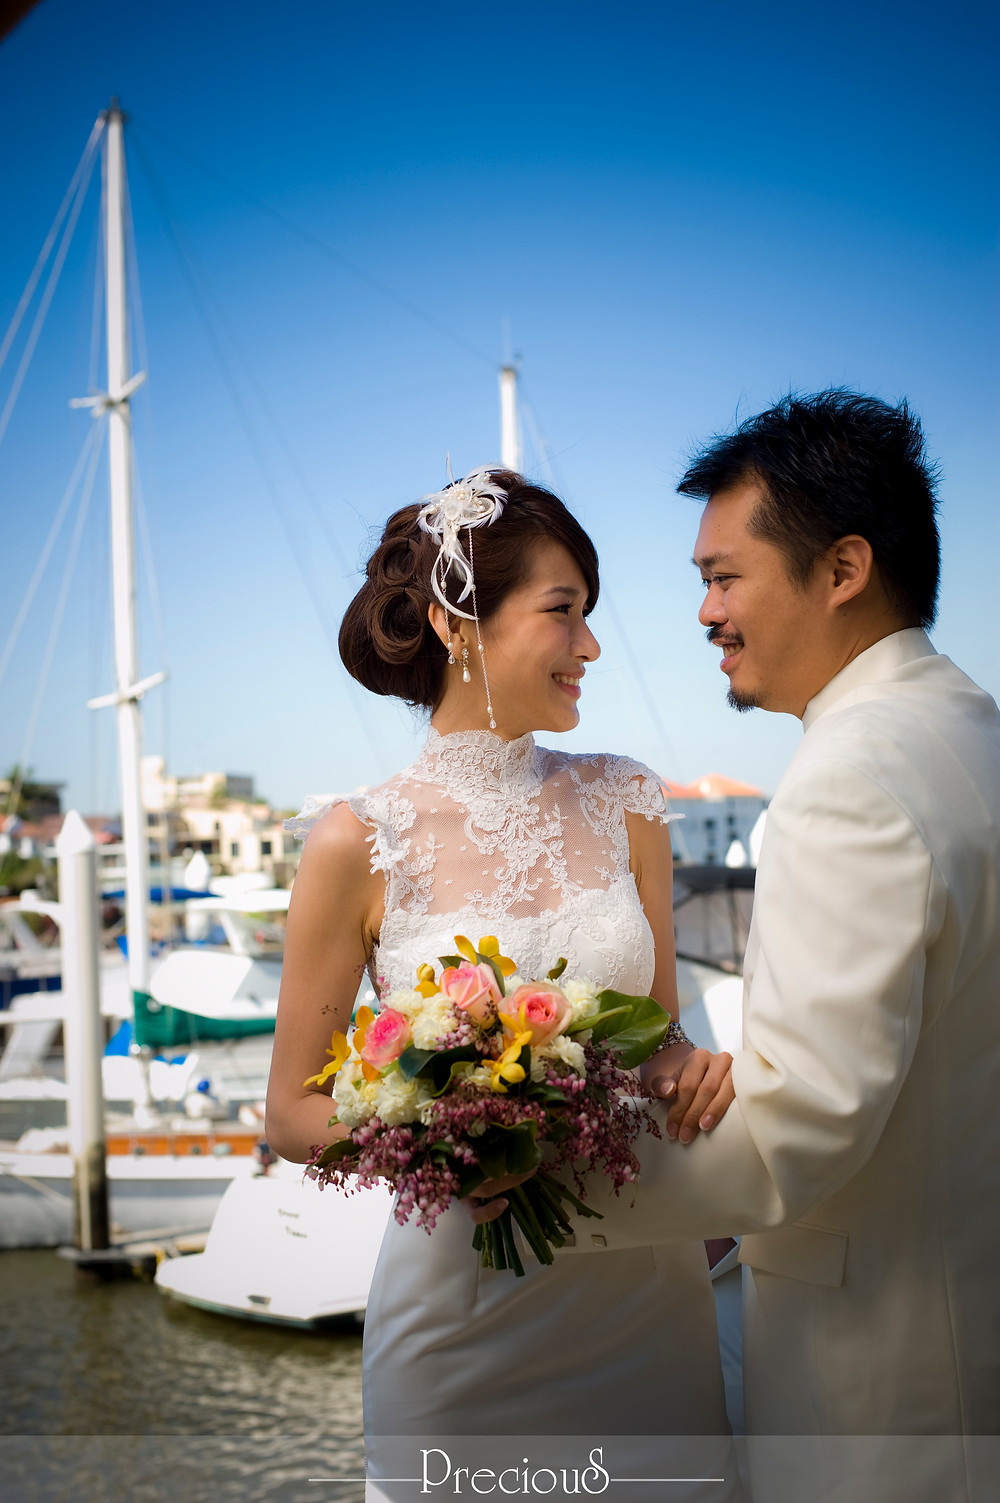 Precious Wedding | Malaysia PreWedding Brisbane Destination Shoot